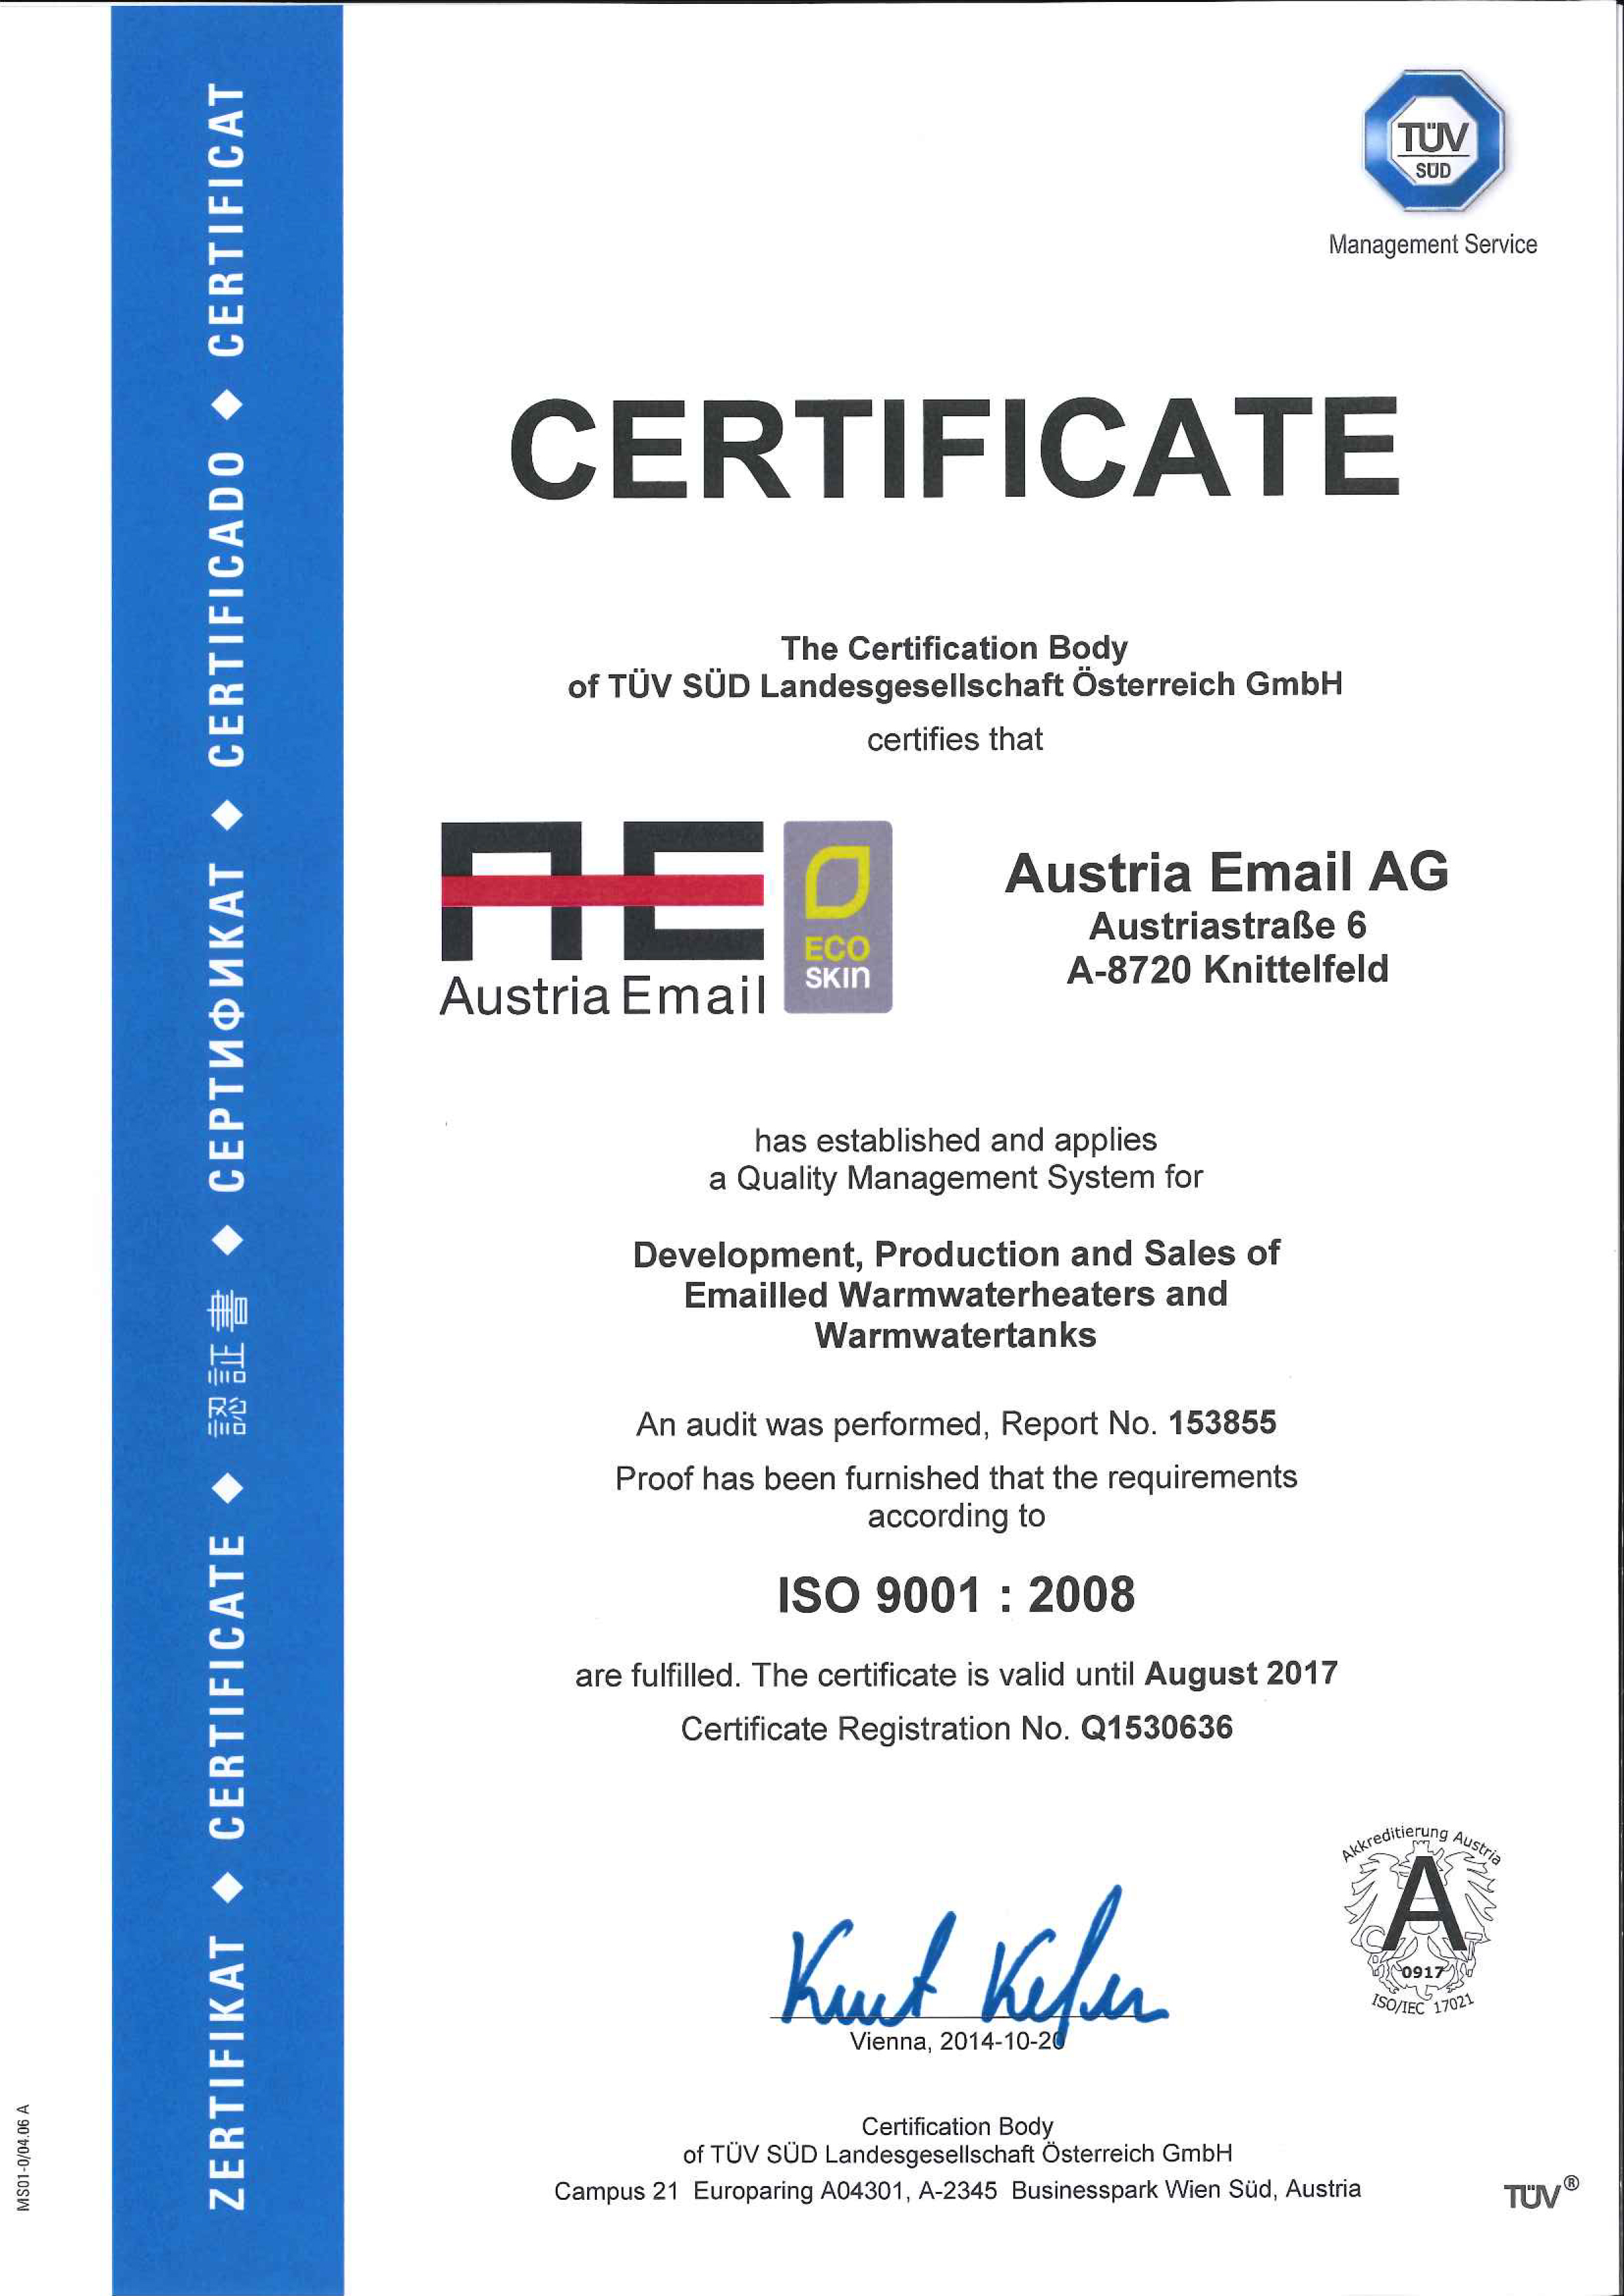 Austria Email AG Certificates ISO 9001 Ecoprofit award